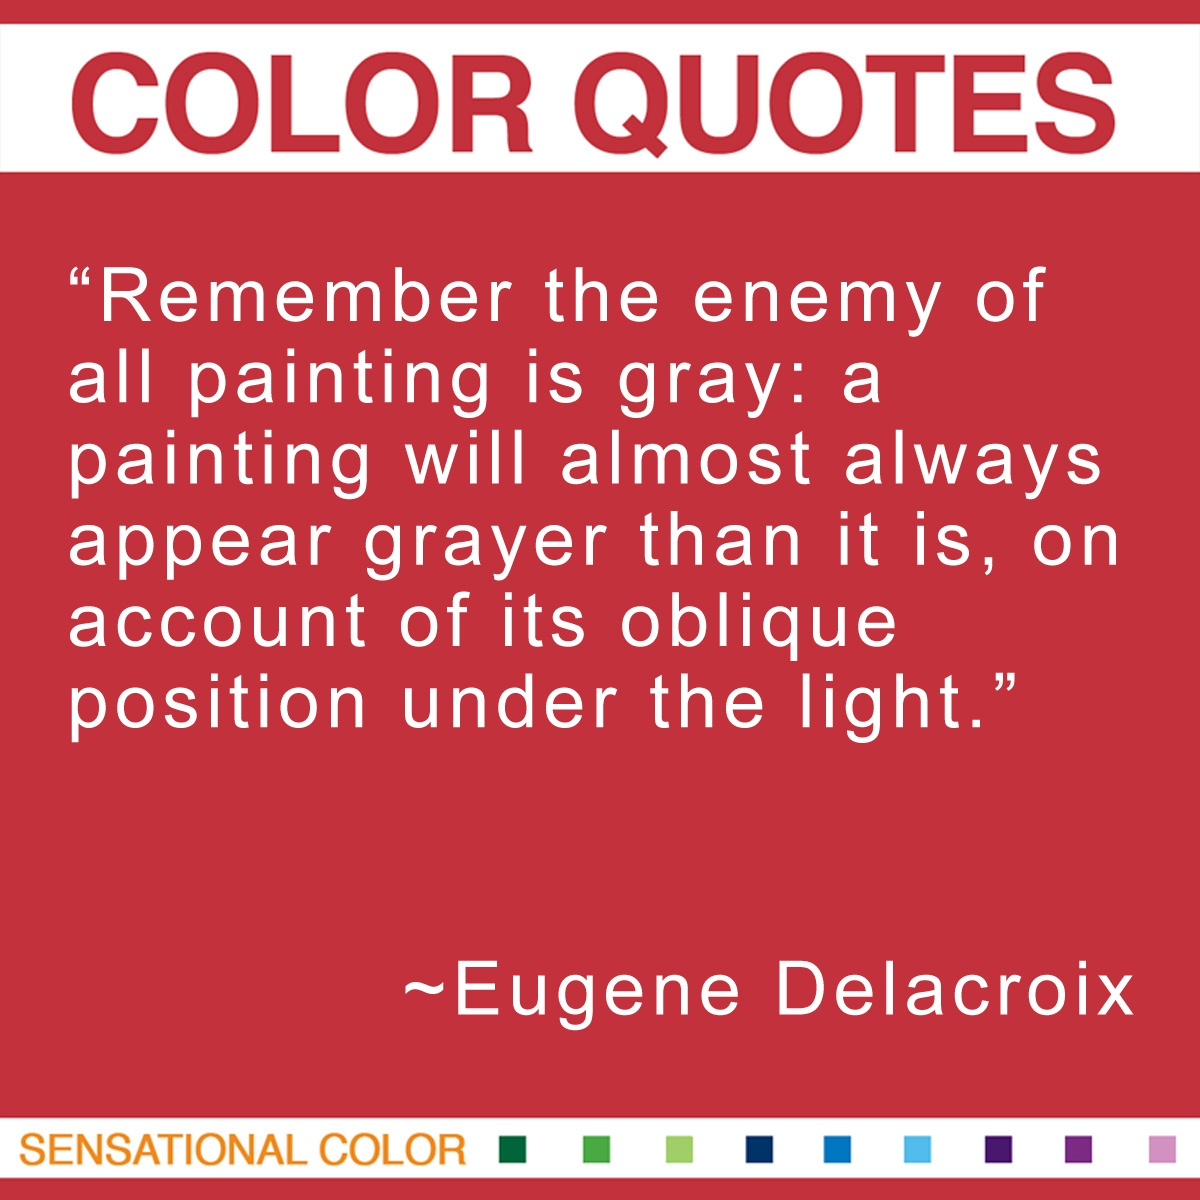 """Remember the enemy of all painting is gray: a painting will almost always appear grayer than it is, on account of its oblique position under the light."" - Eugene Delacroix"